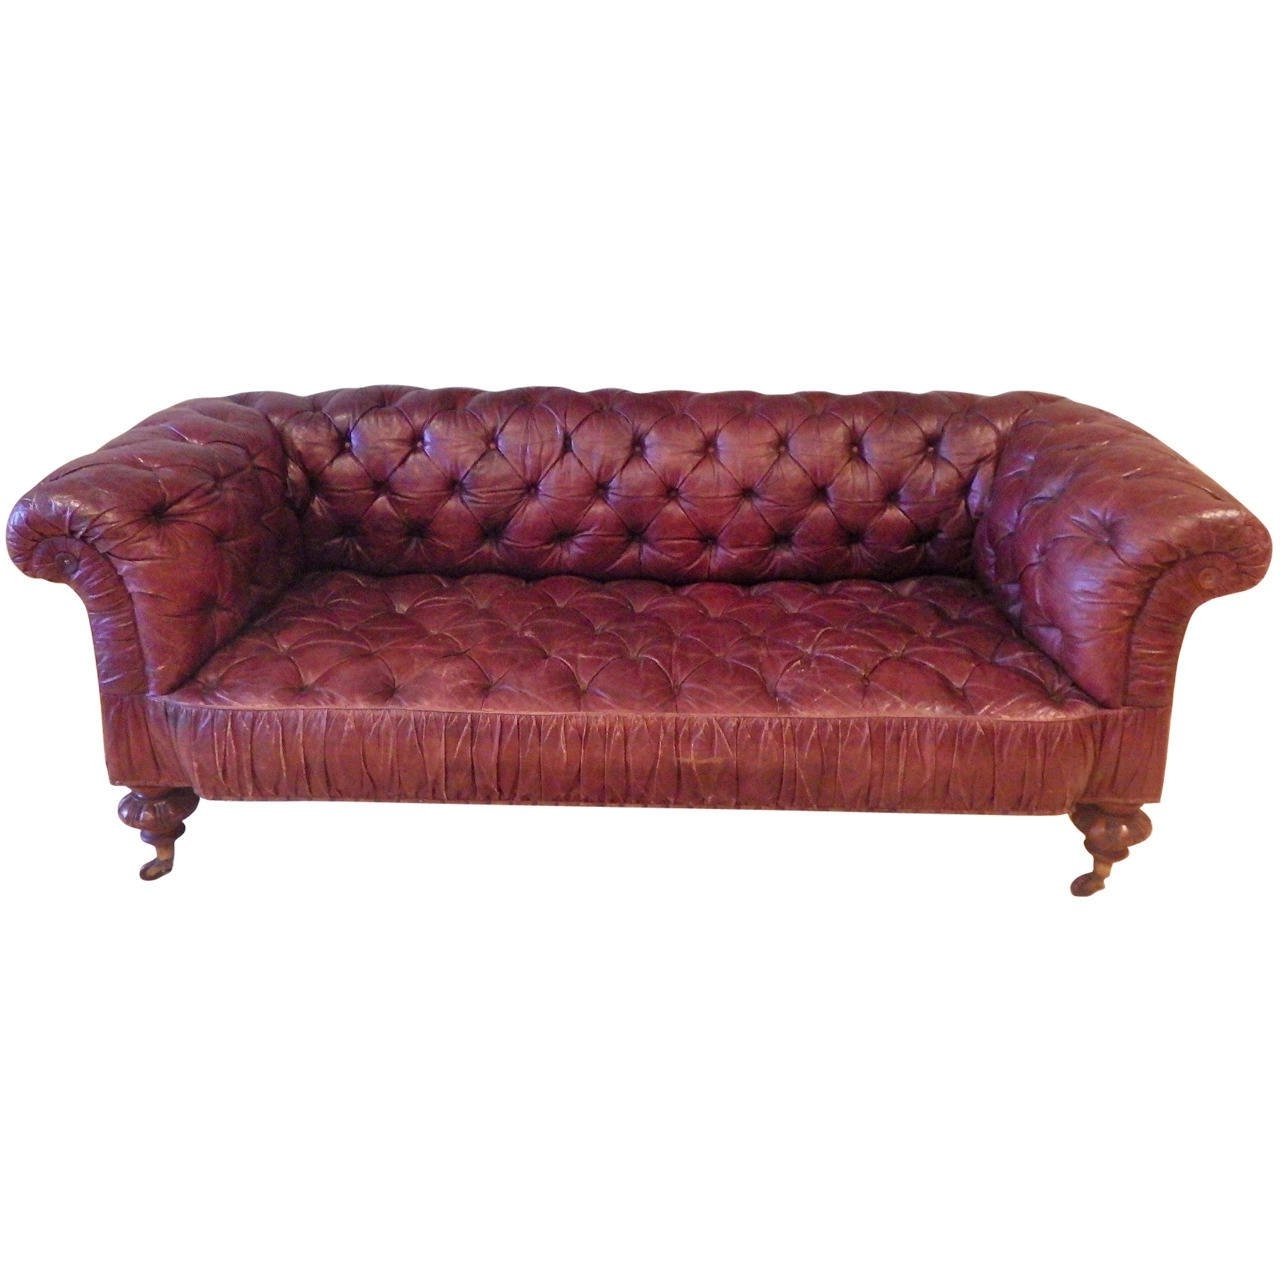 Most Recent Superb Victorian Leather Sofa, Circa 1870 For Sale At 1Stdibs With Regard To Victorian Leather Sofas (View 2 of 15)